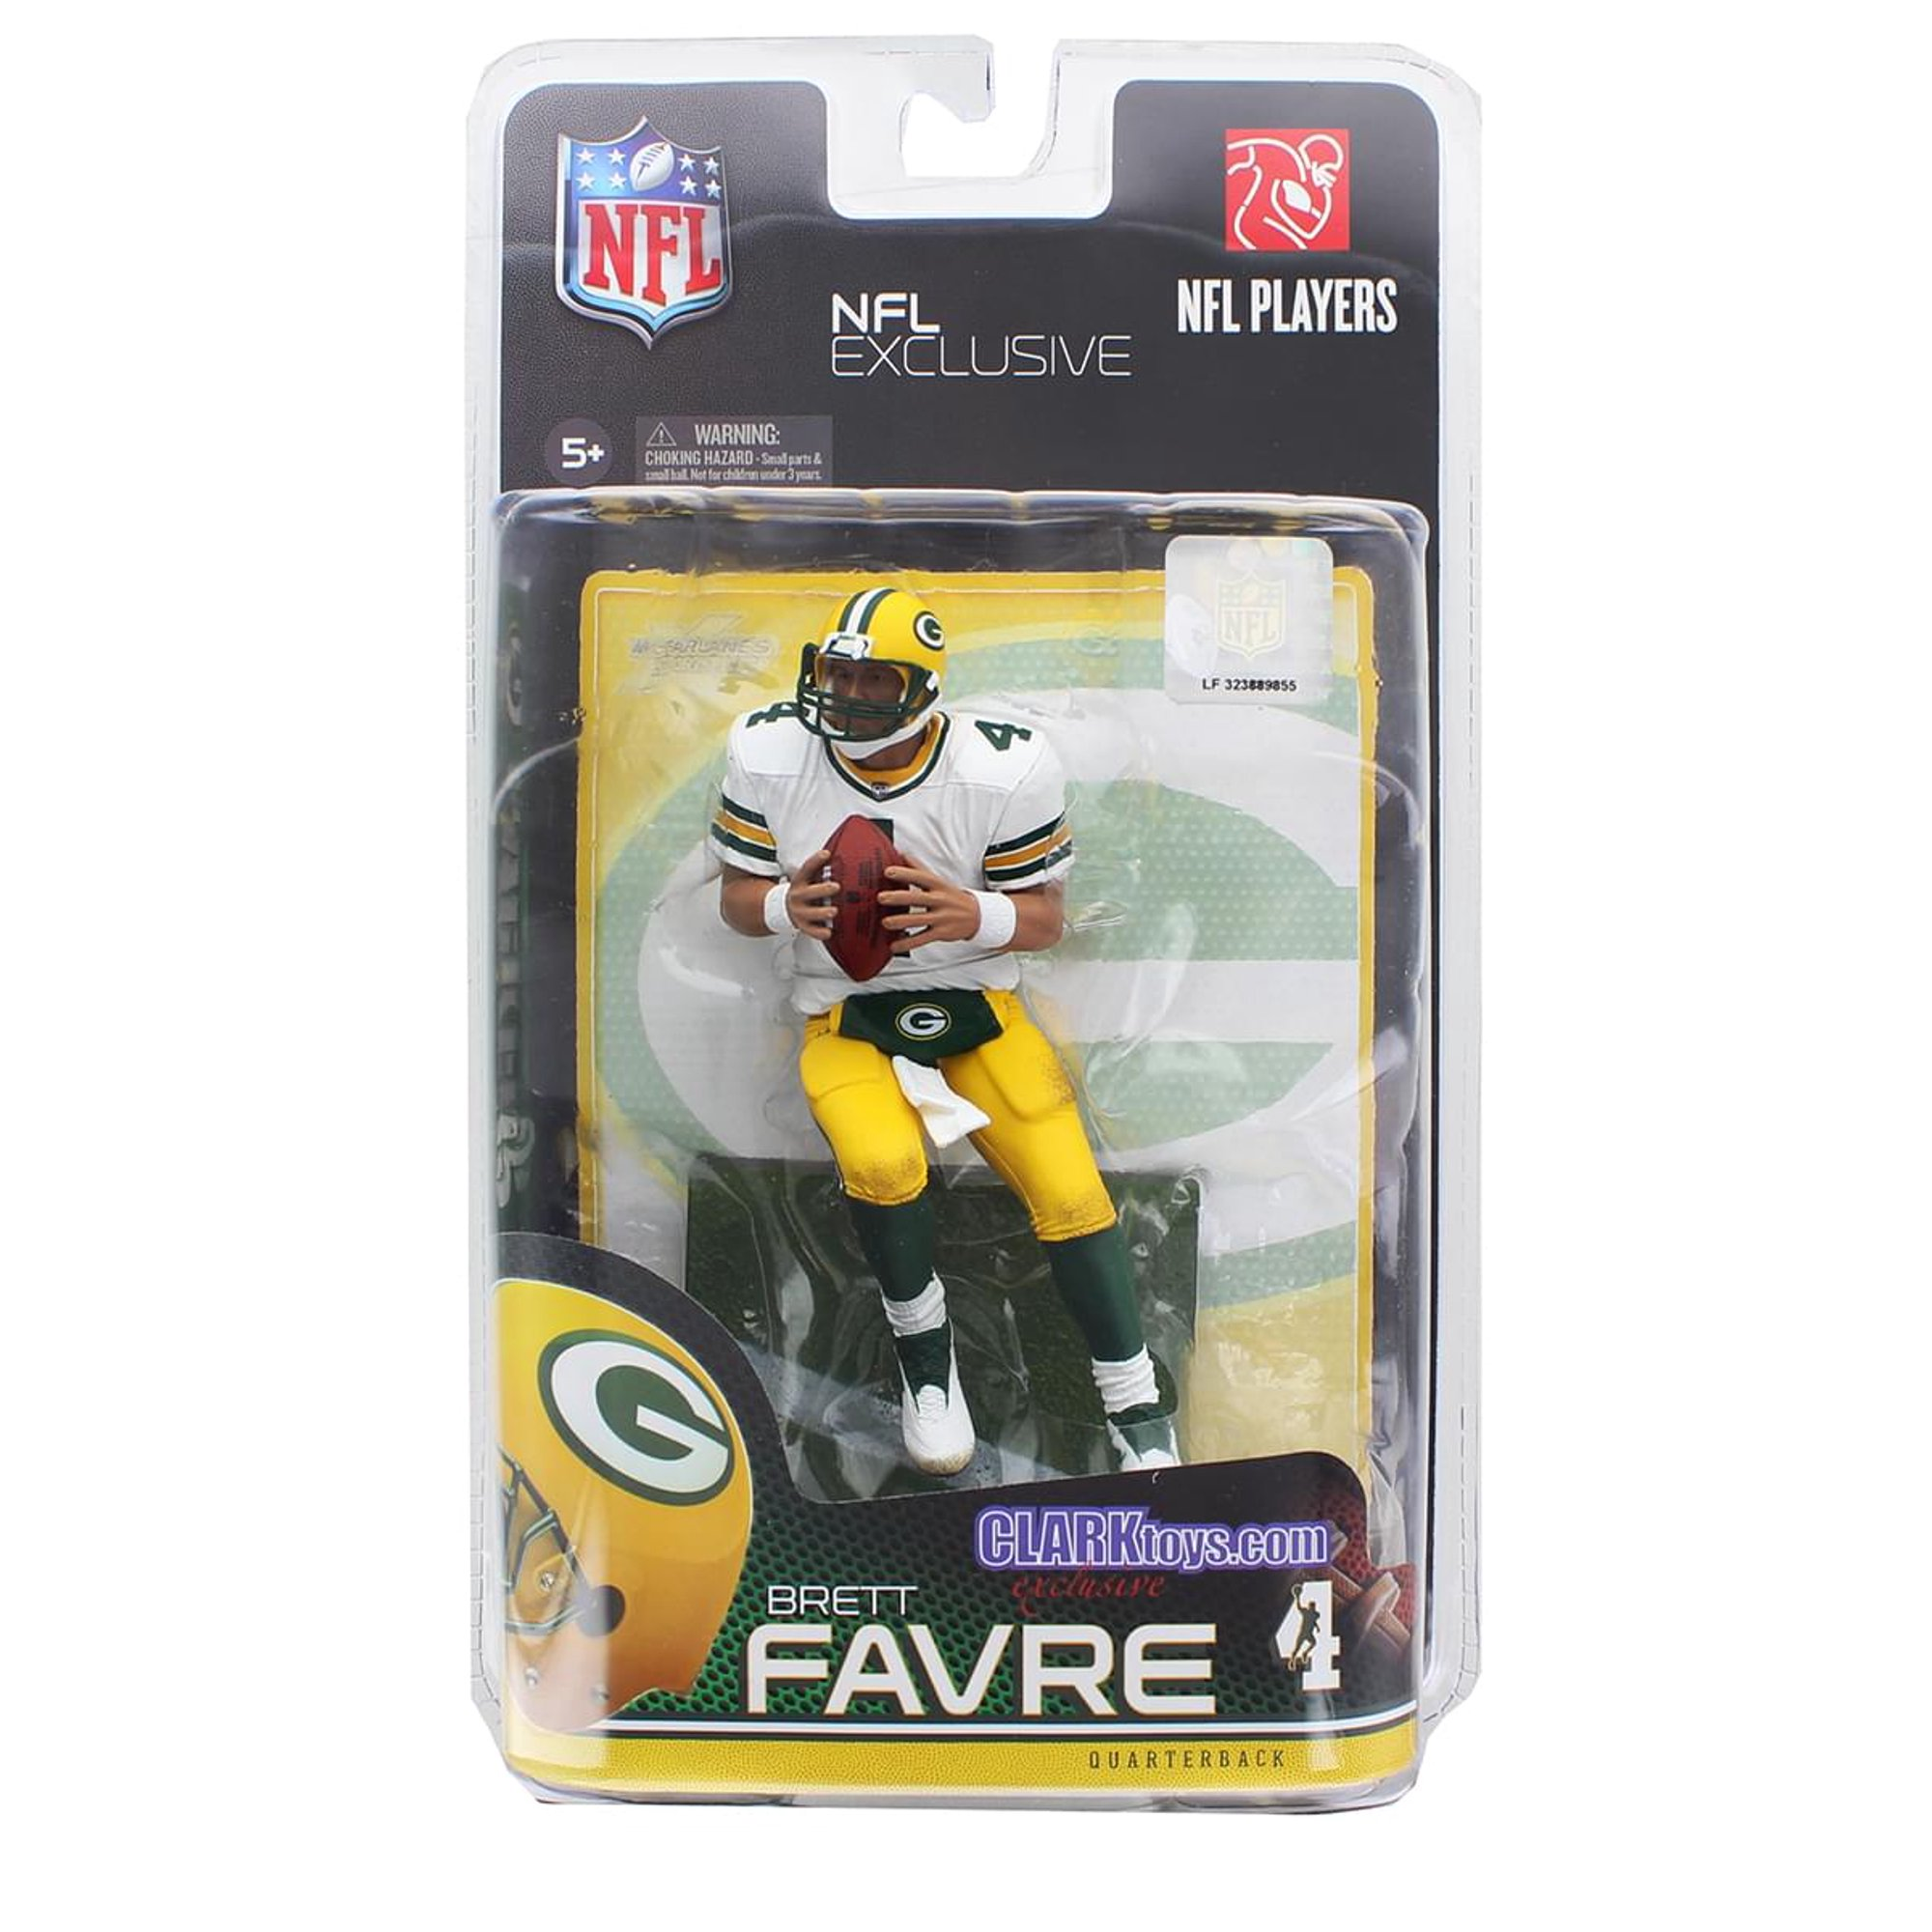 sneakers for cheap 5f84a 551bd Green Bay Packers NFL Figure: Brett Favre, White Jersey (CLARKtoys  Exclusive)